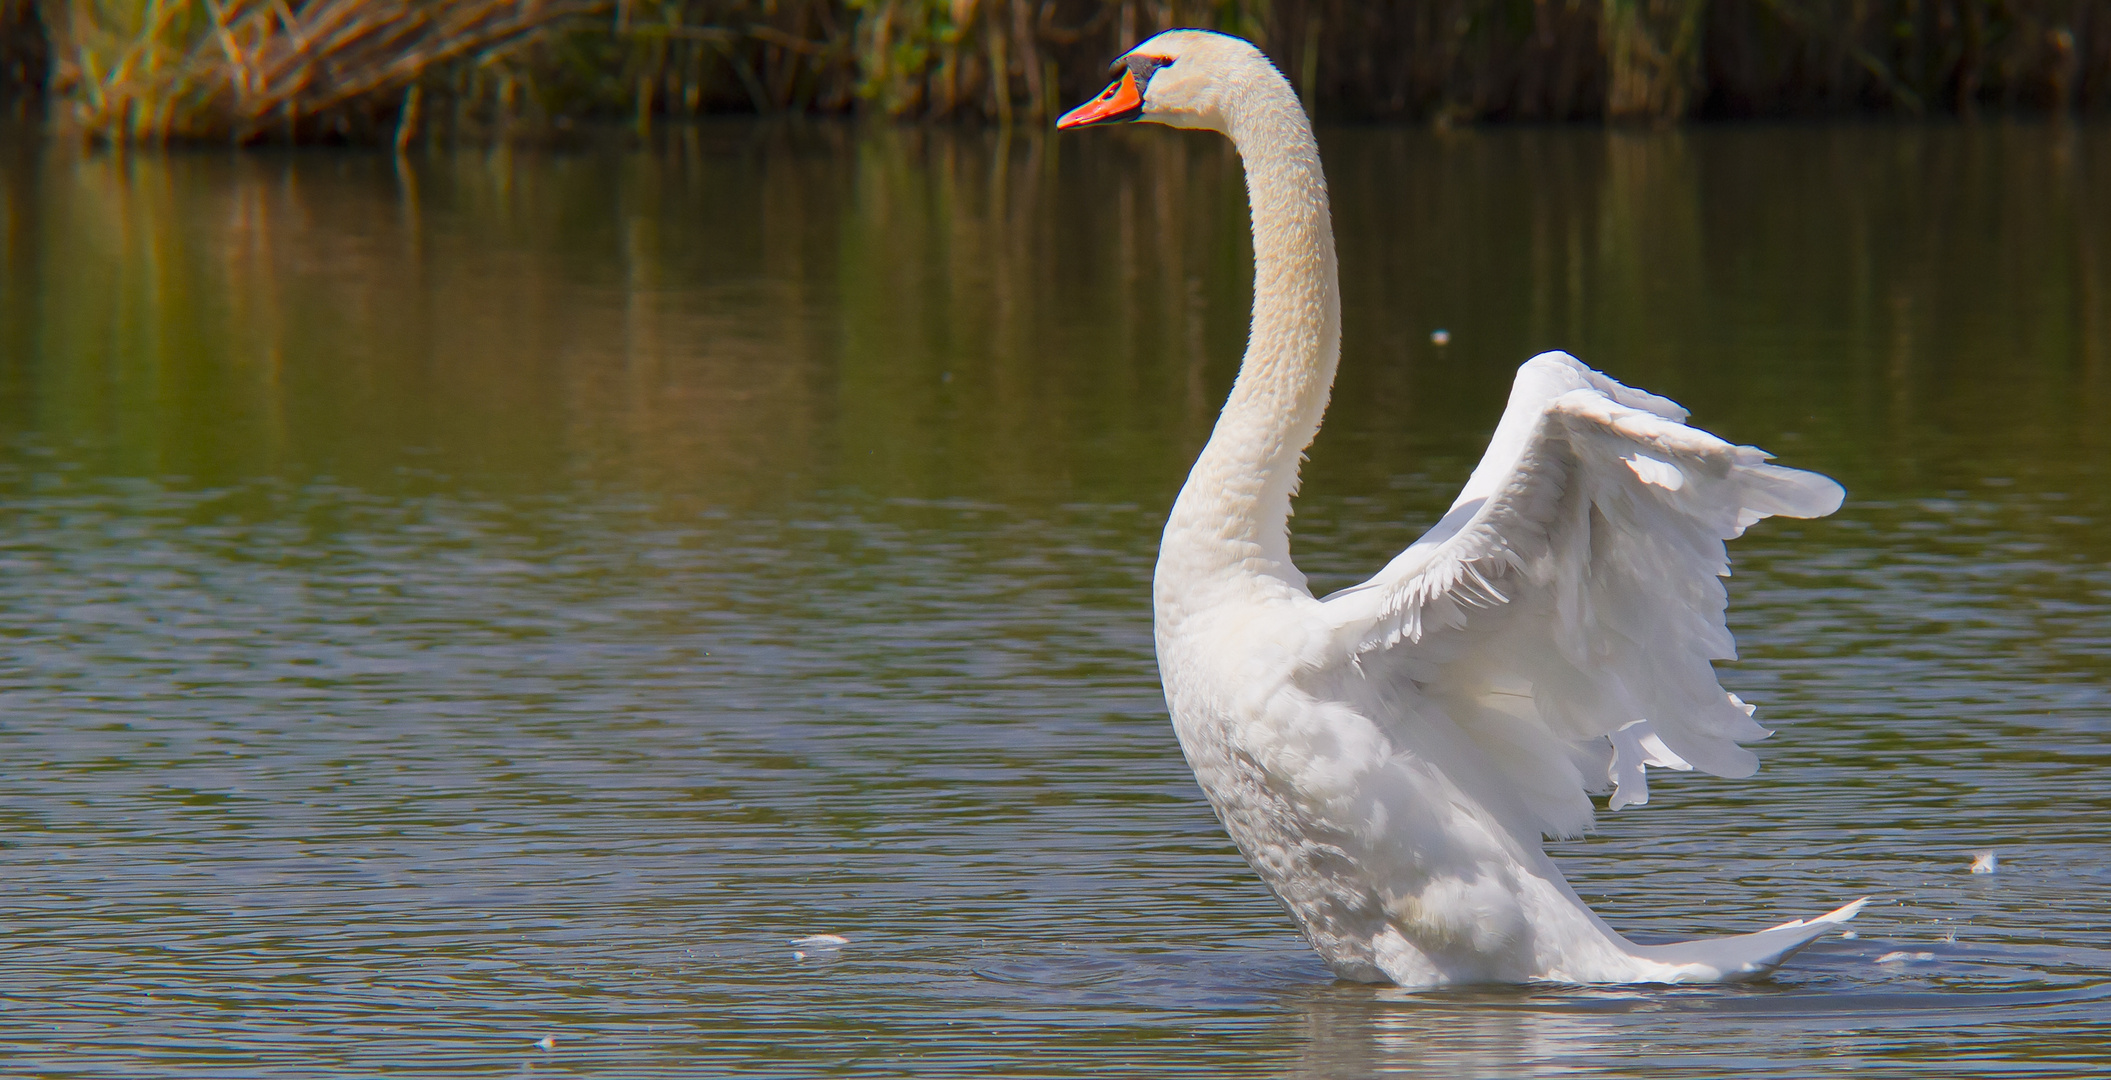 The Swan...